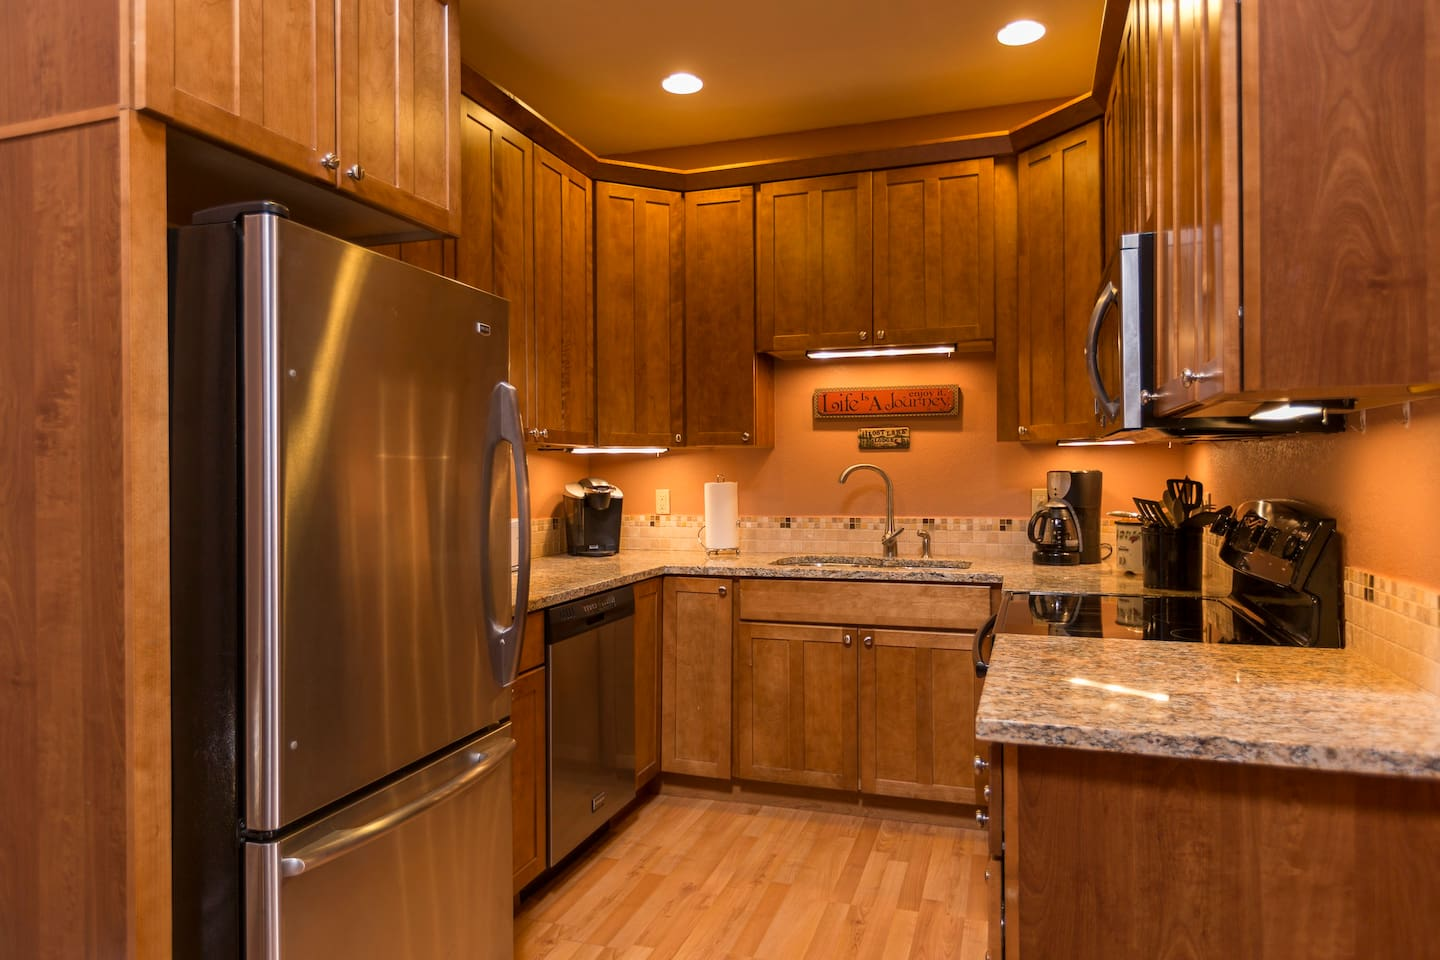 """Completely updated, granite countertop, stainless steel, wood floor, fully stocked """"chef's"""" kitchen. We include many extras like a Breville milk frother (enjoy your cafe au lait, steamed milk drink, or your frothy hot chocolate), croc pot, etc."""